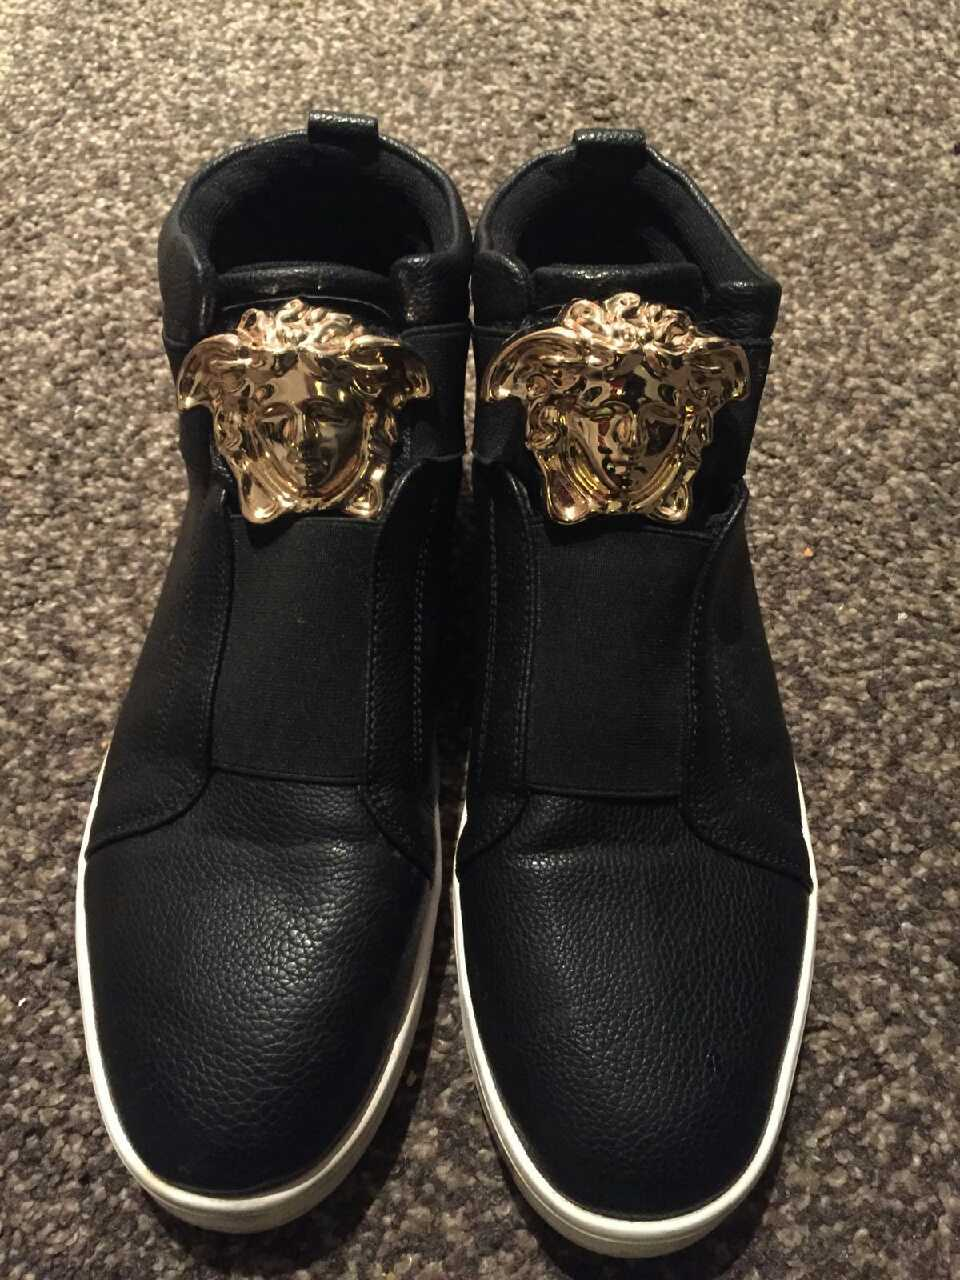 versace fashion shoes.